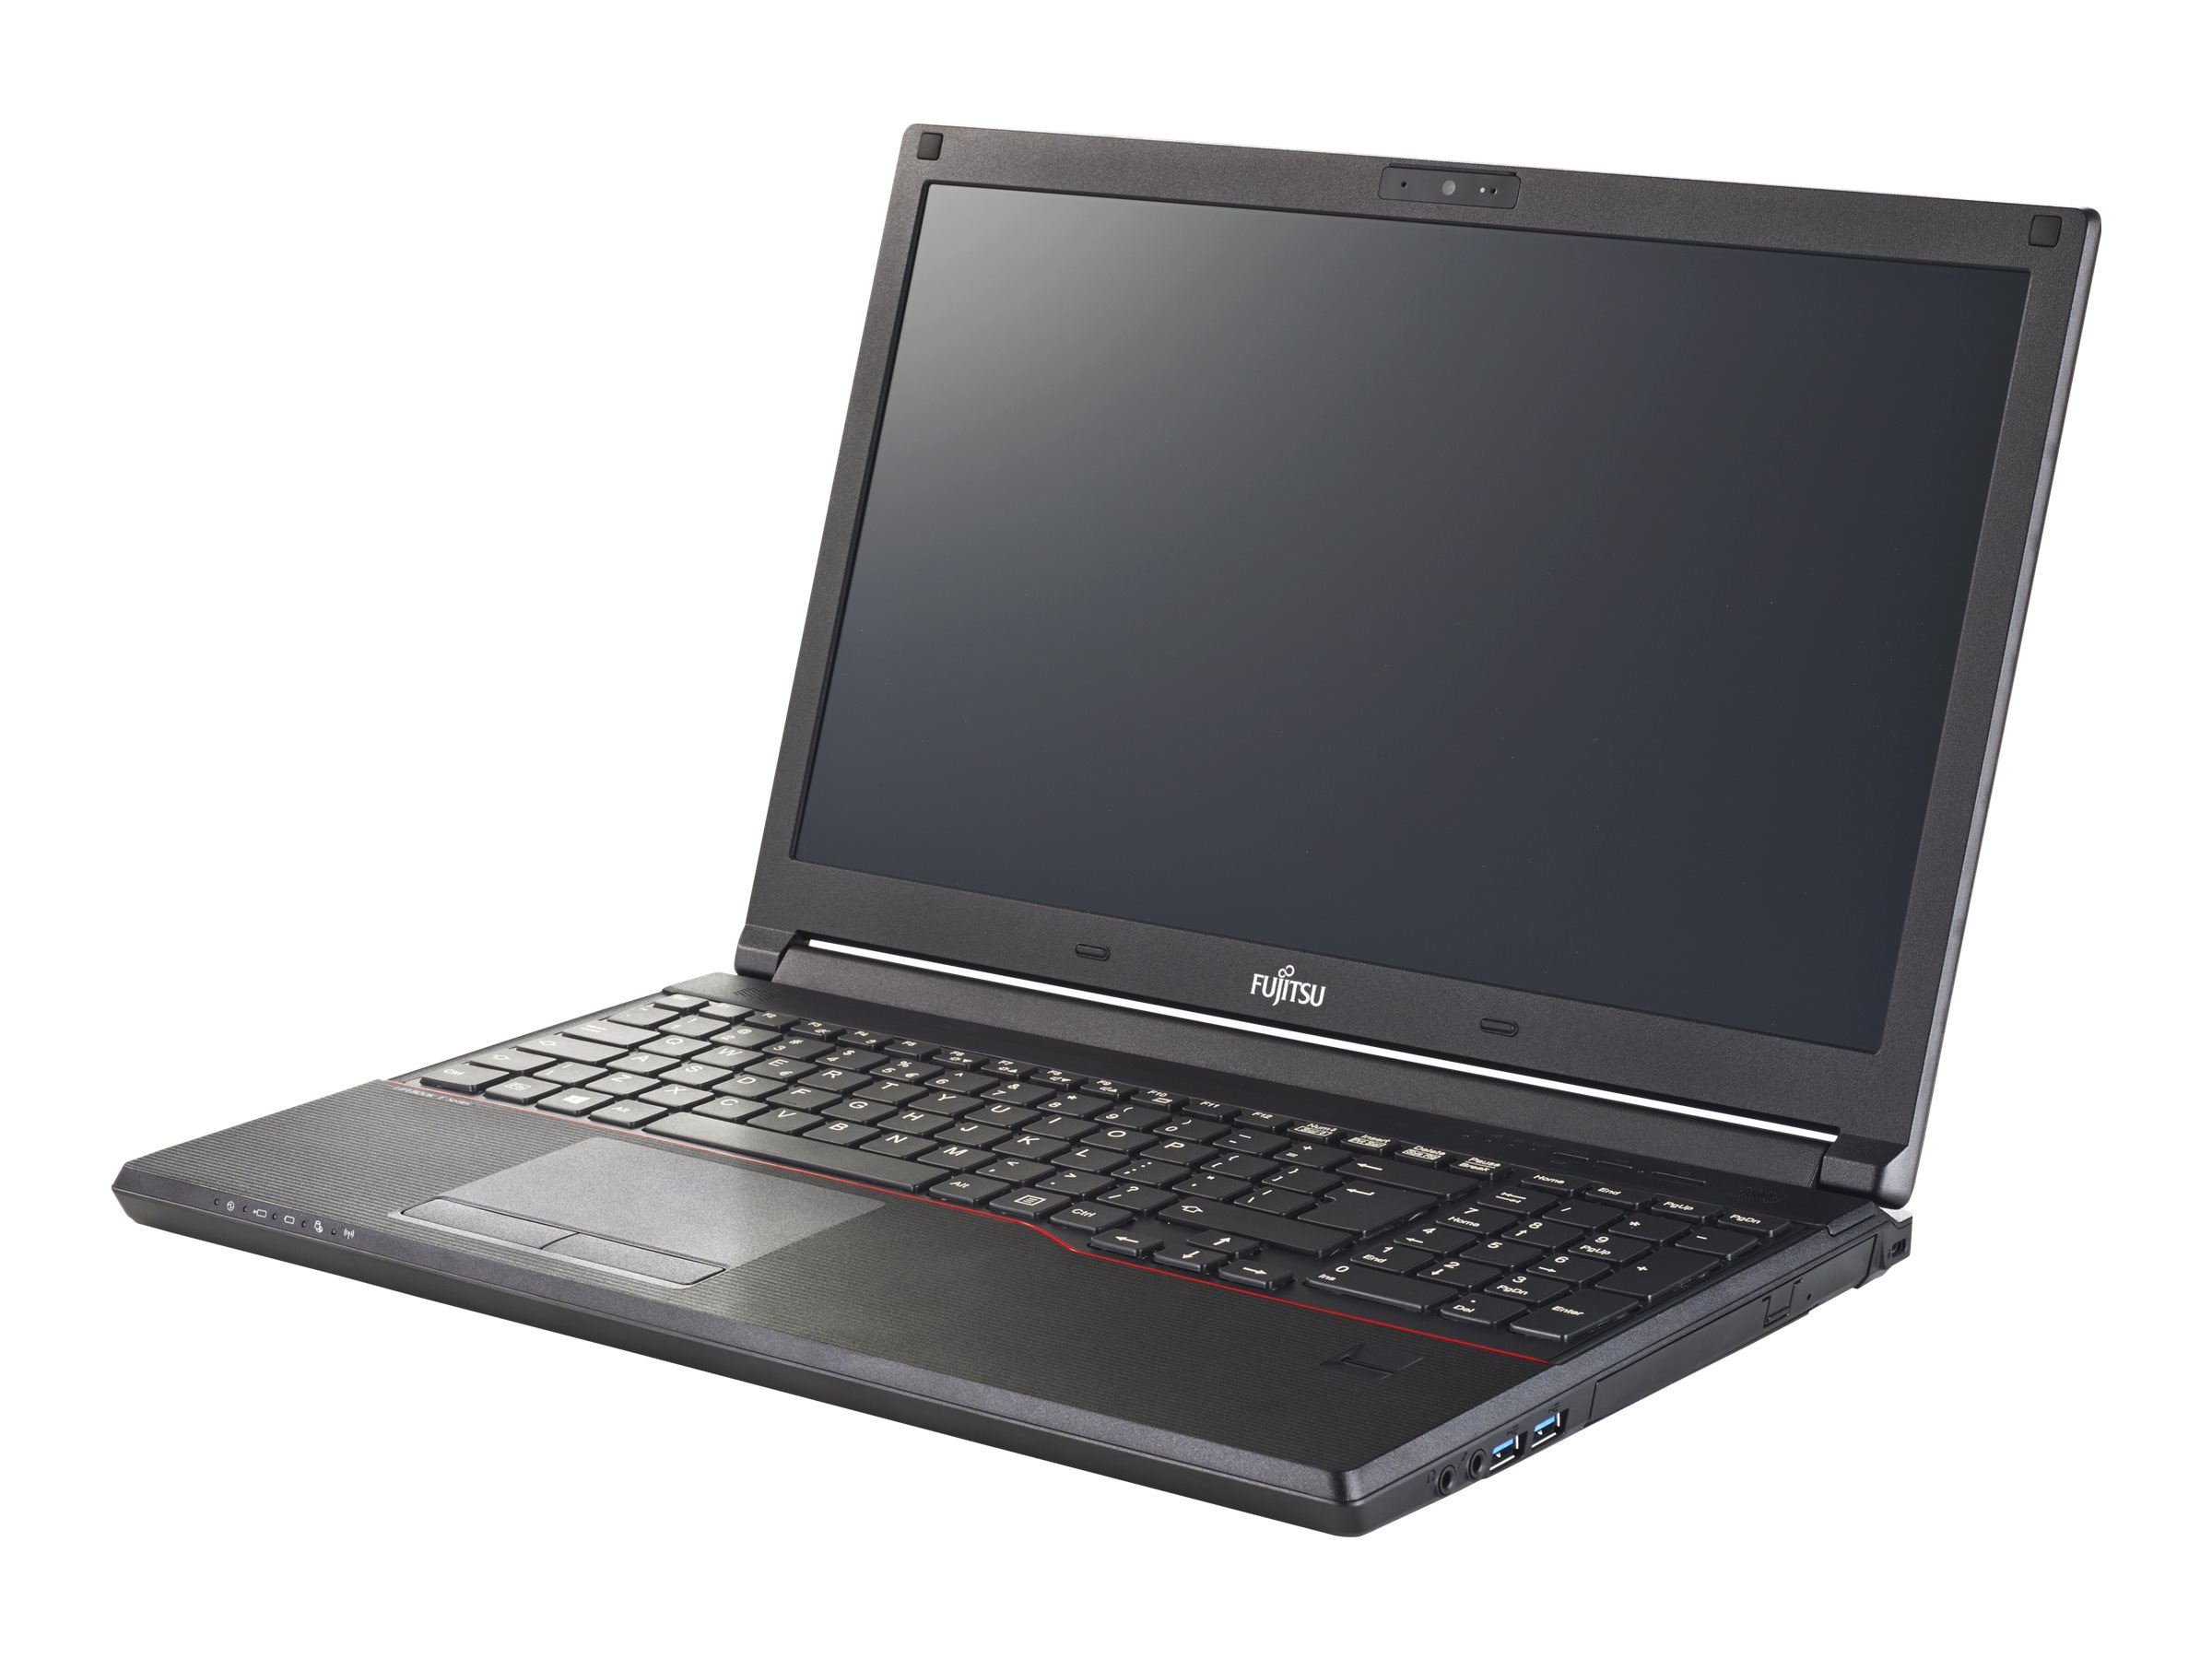 Fujitsu LifeBook E556 2.3GHz Core i5 15.6in display